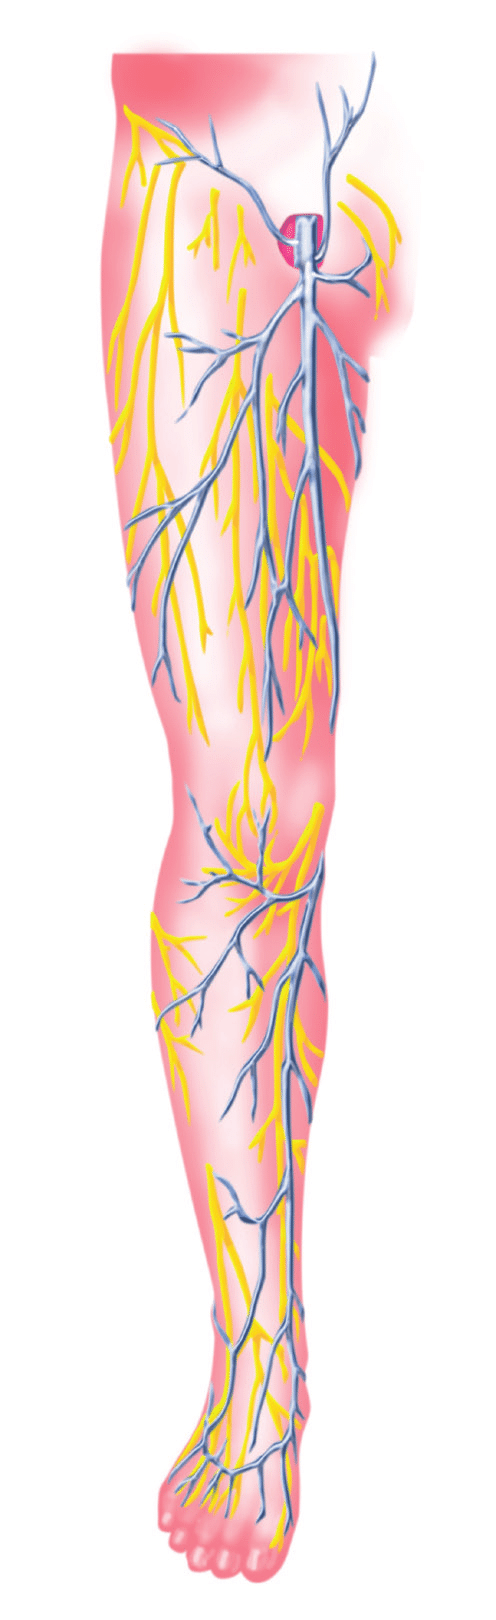 small resolution of 1 superficial veins of the lower extremity